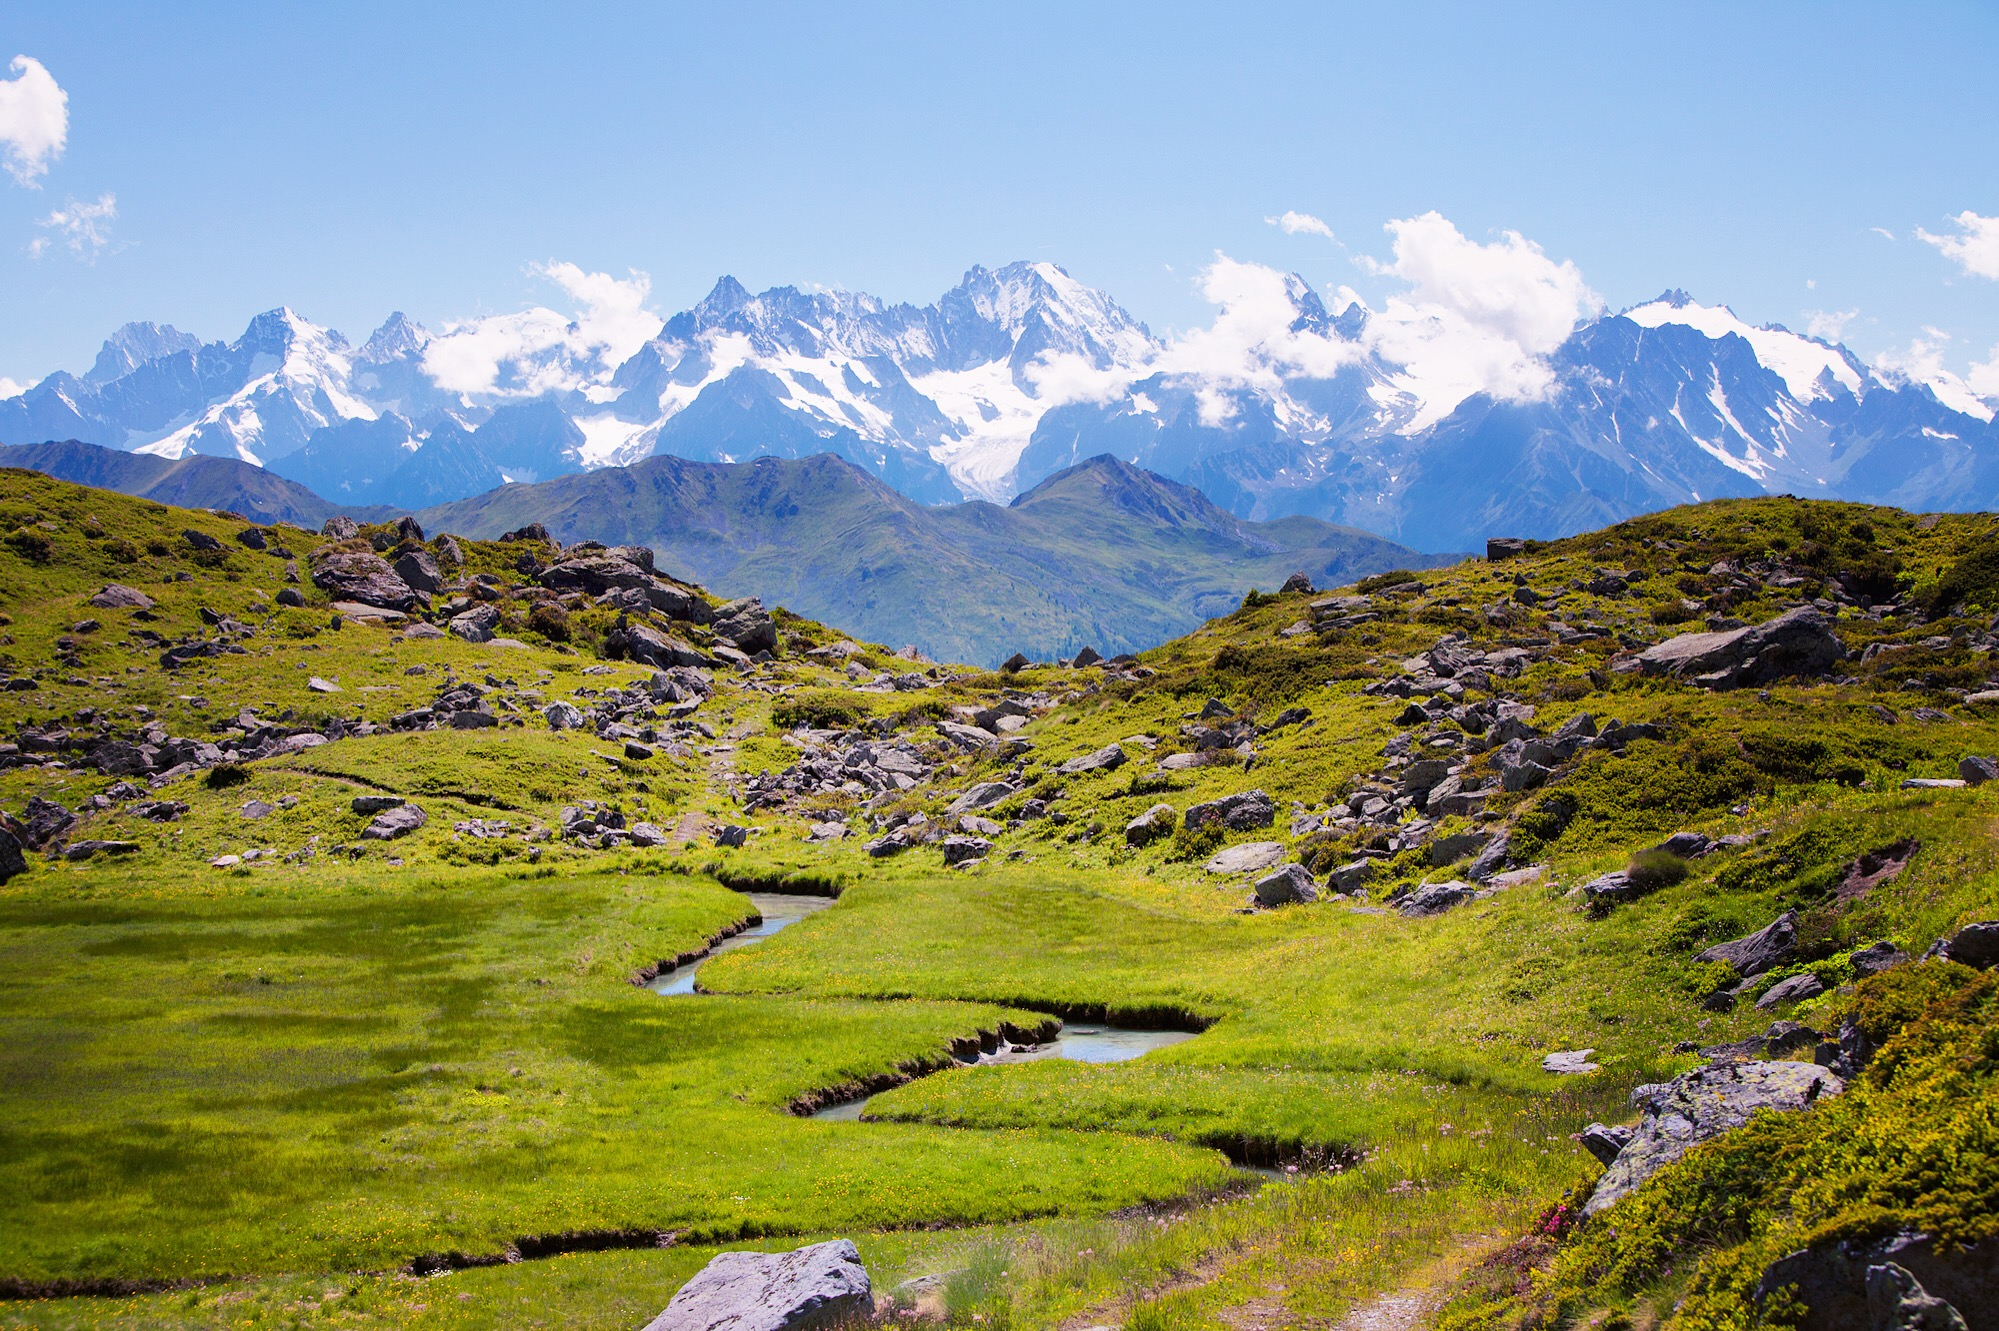 Day 4:   Cabane Mont Fort   Lost circling a valley descent from Cabane du Mont Fort after taking the long way up through Verbier. The spectacular panorama of the Mont Blanc massif and winding river fed by Glacier de Tortin echoes purpose to an off-foot.